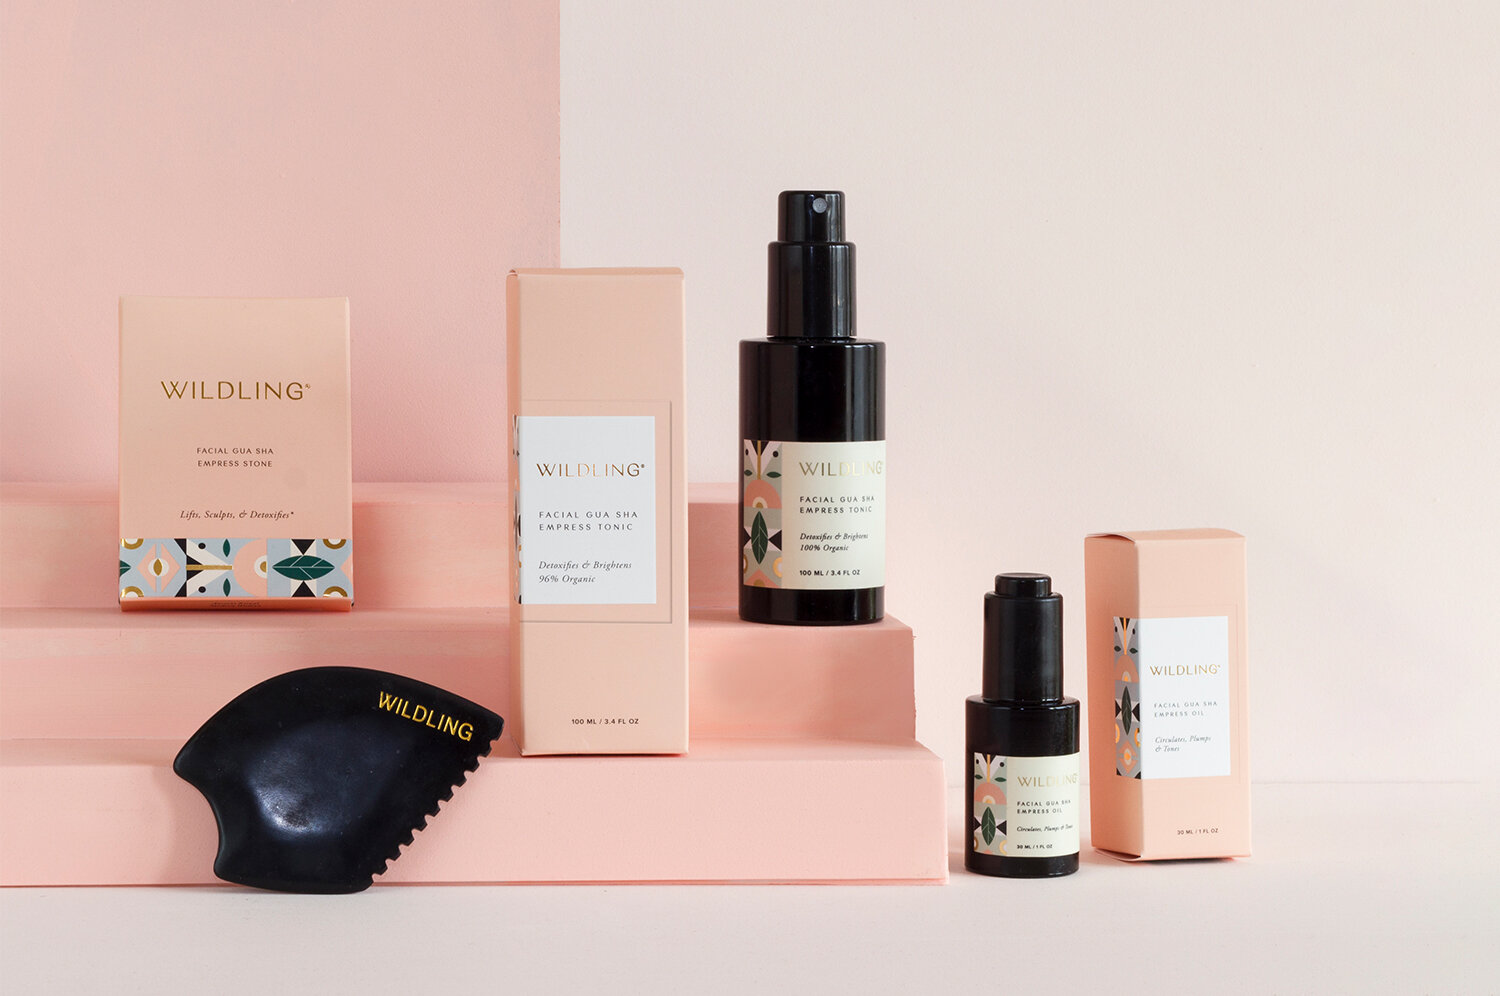 wildling products